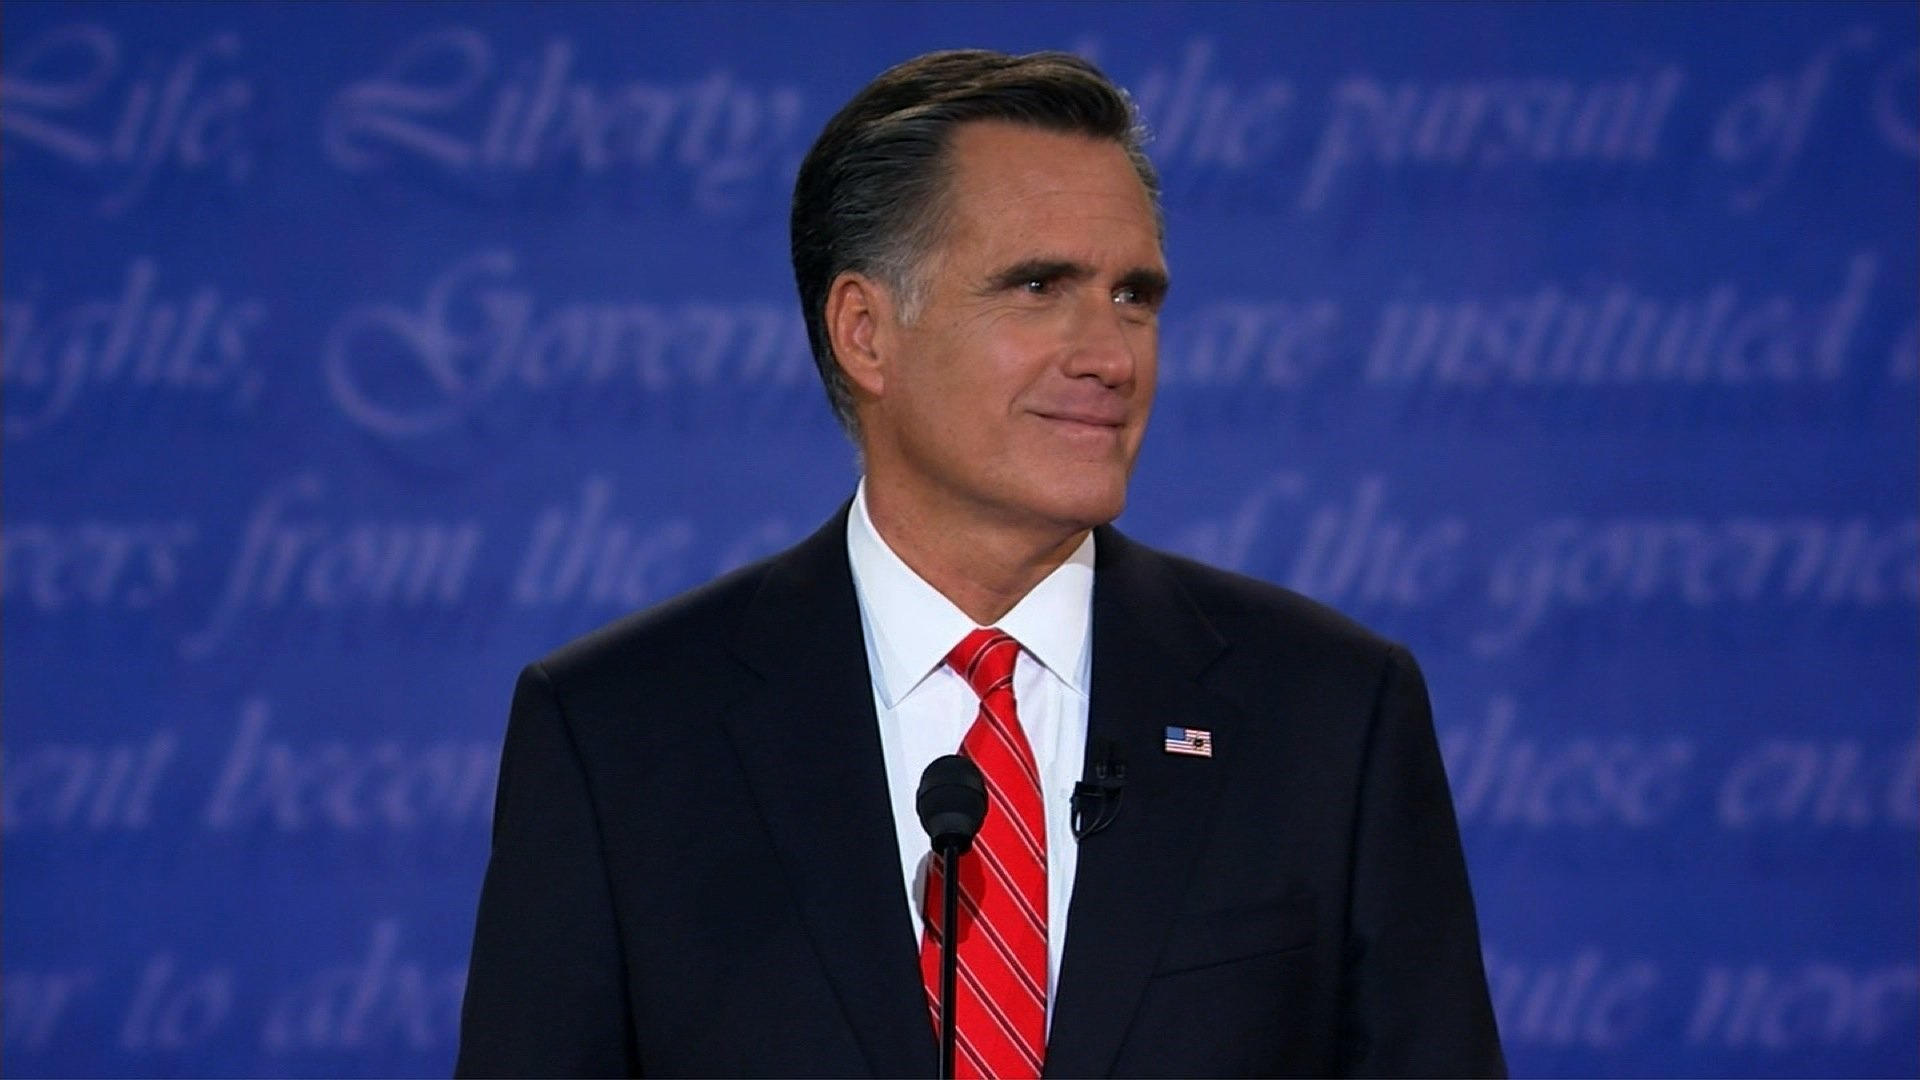 Romney: Clinton told me to take Trump Secretary of State job